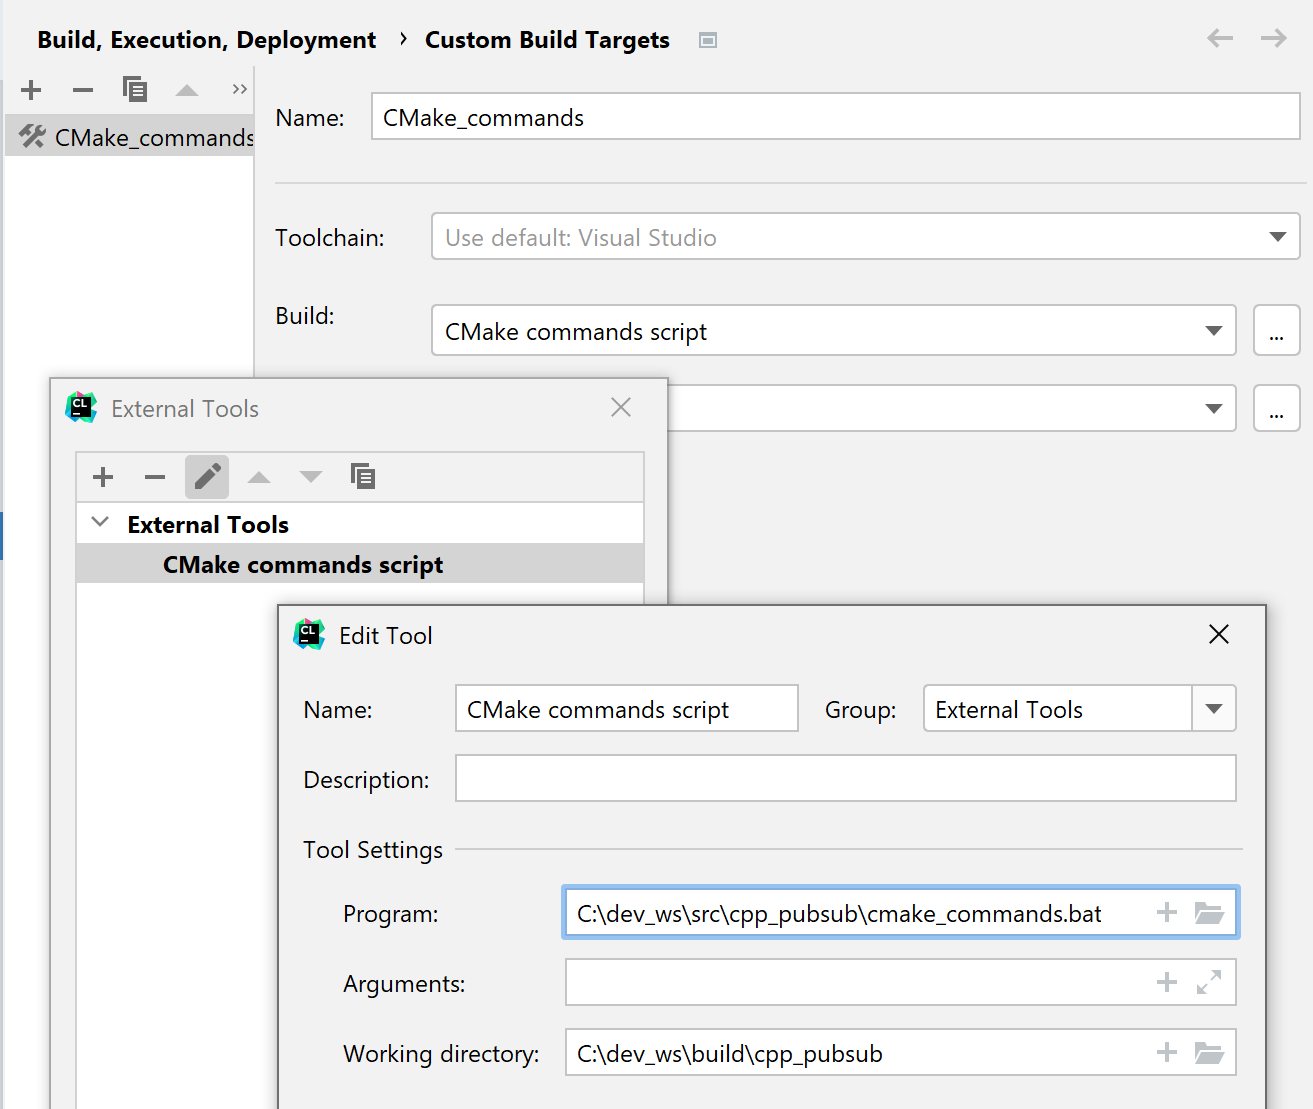 Creating a custom build target for CMake commands